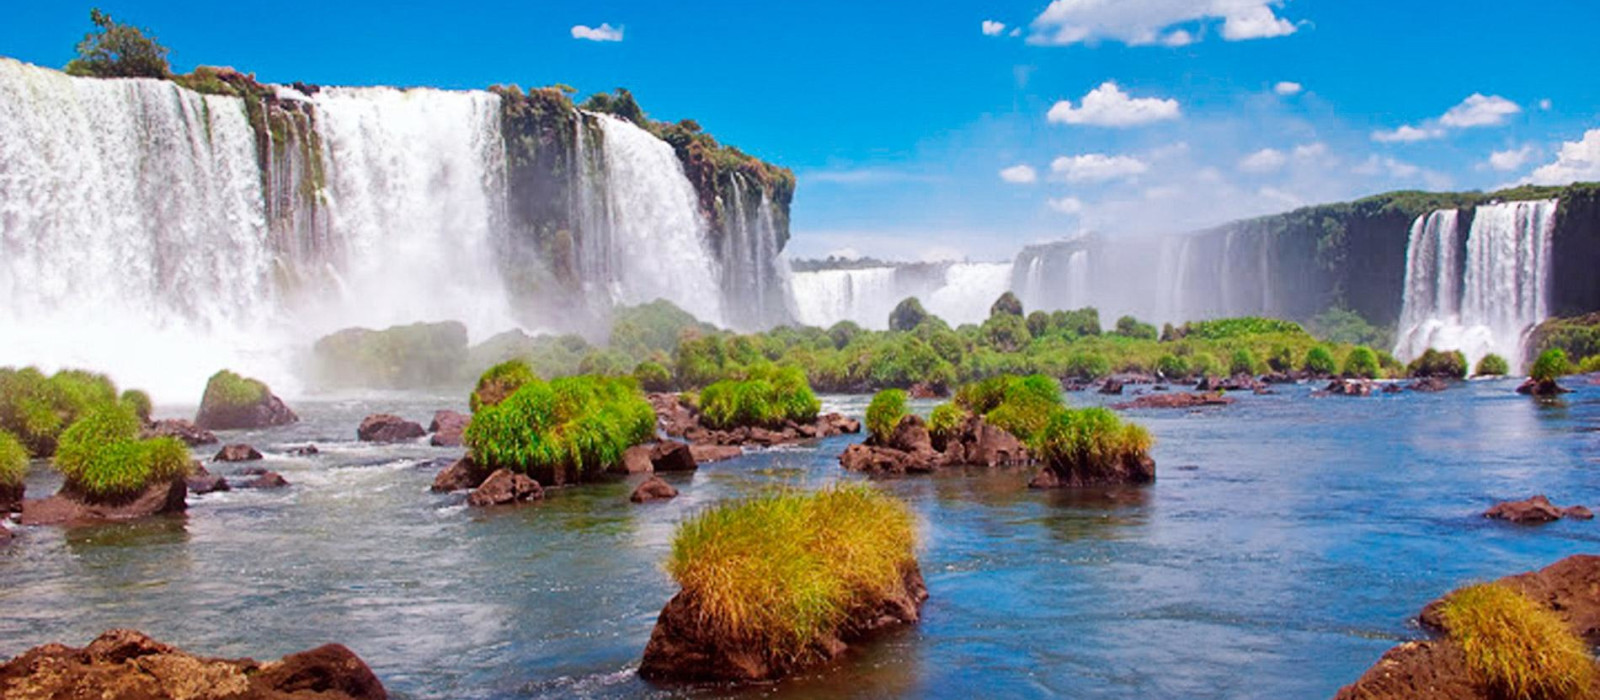 Brazil's Wildlife, Waterfalls and Beach Tour Trip 1